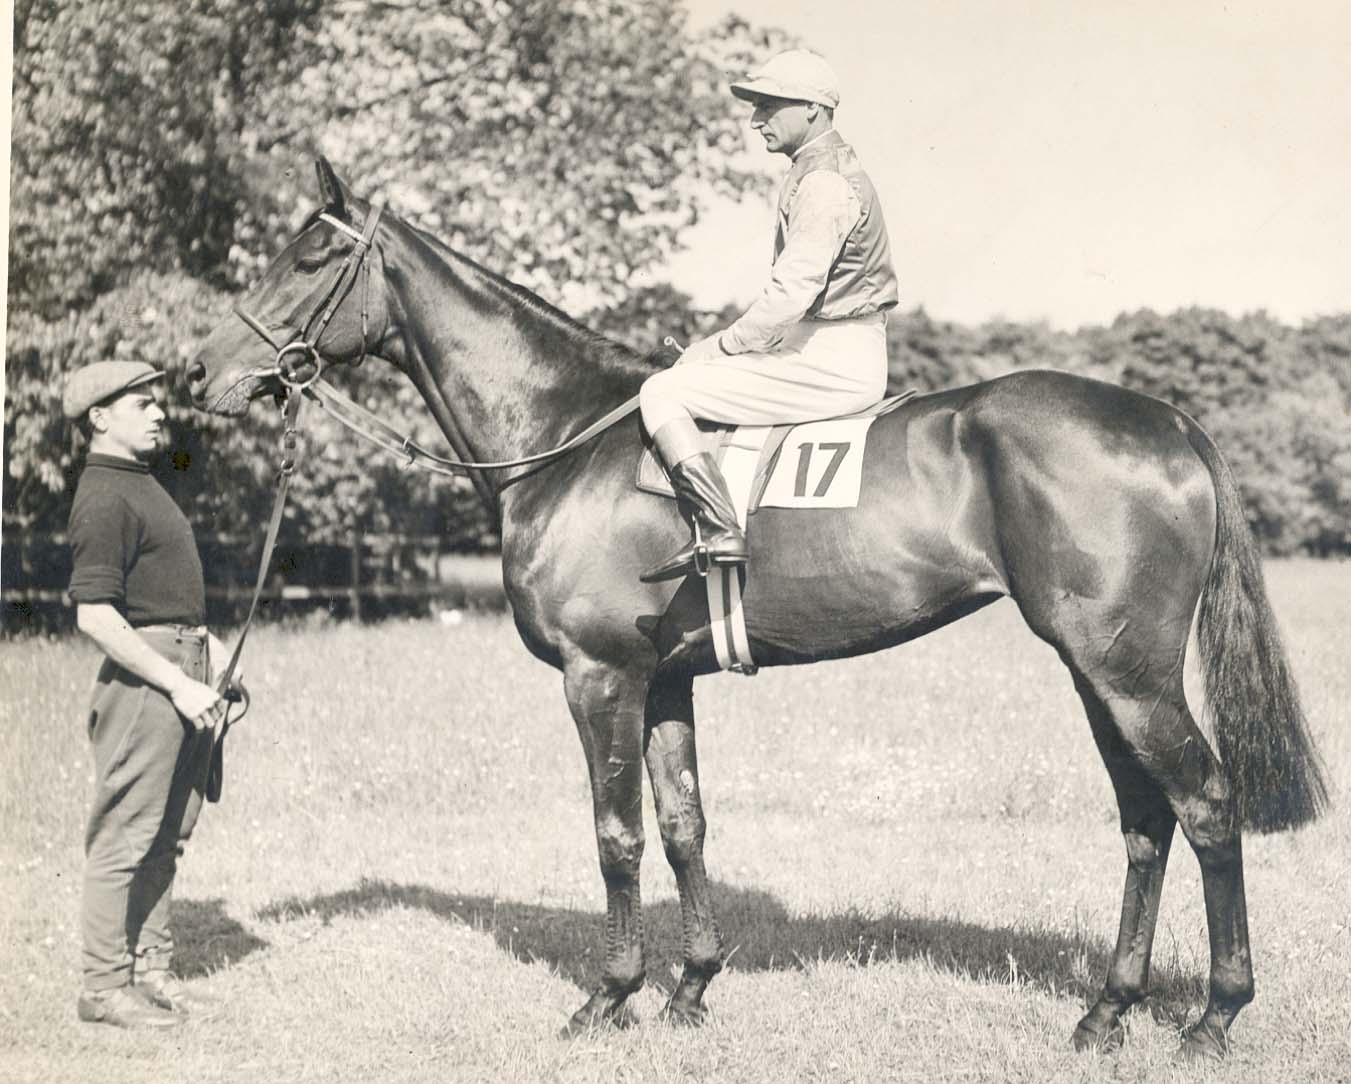 jockey Frank Hayes won a race at Belmont Park in New York